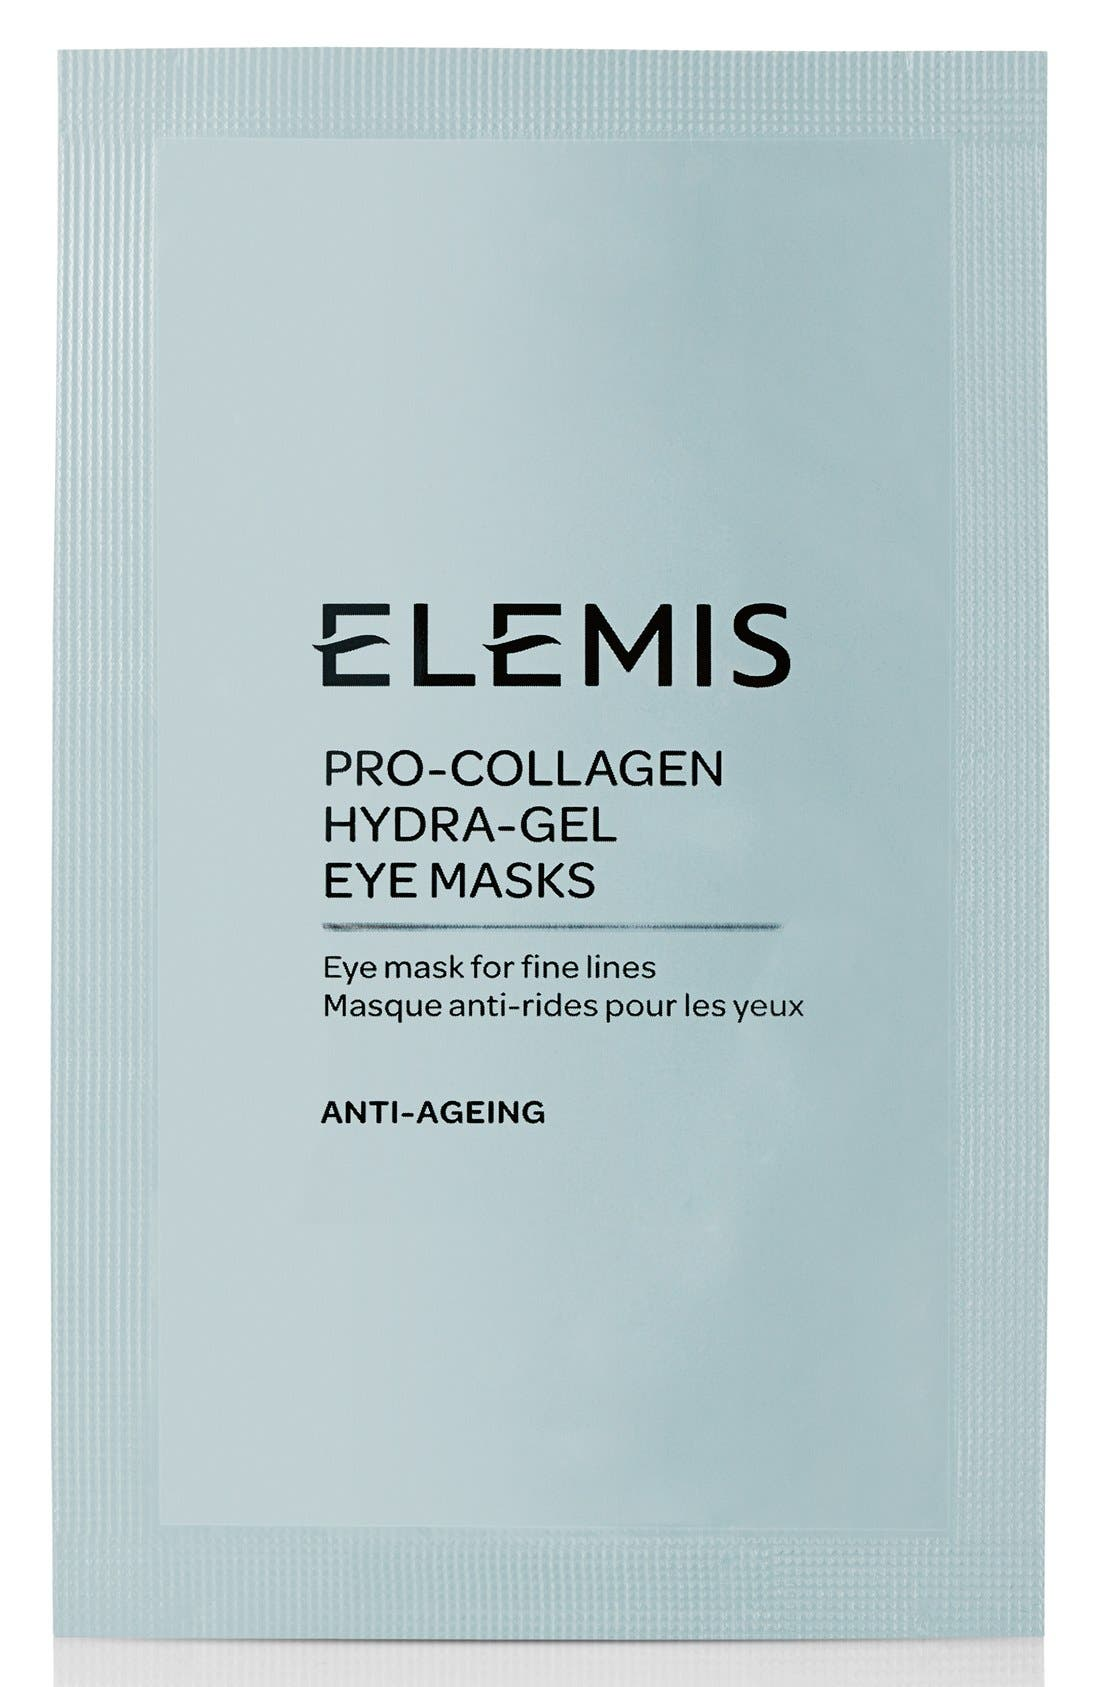 Elemis Pro-Collagen Hydra-Gel Eye Mask